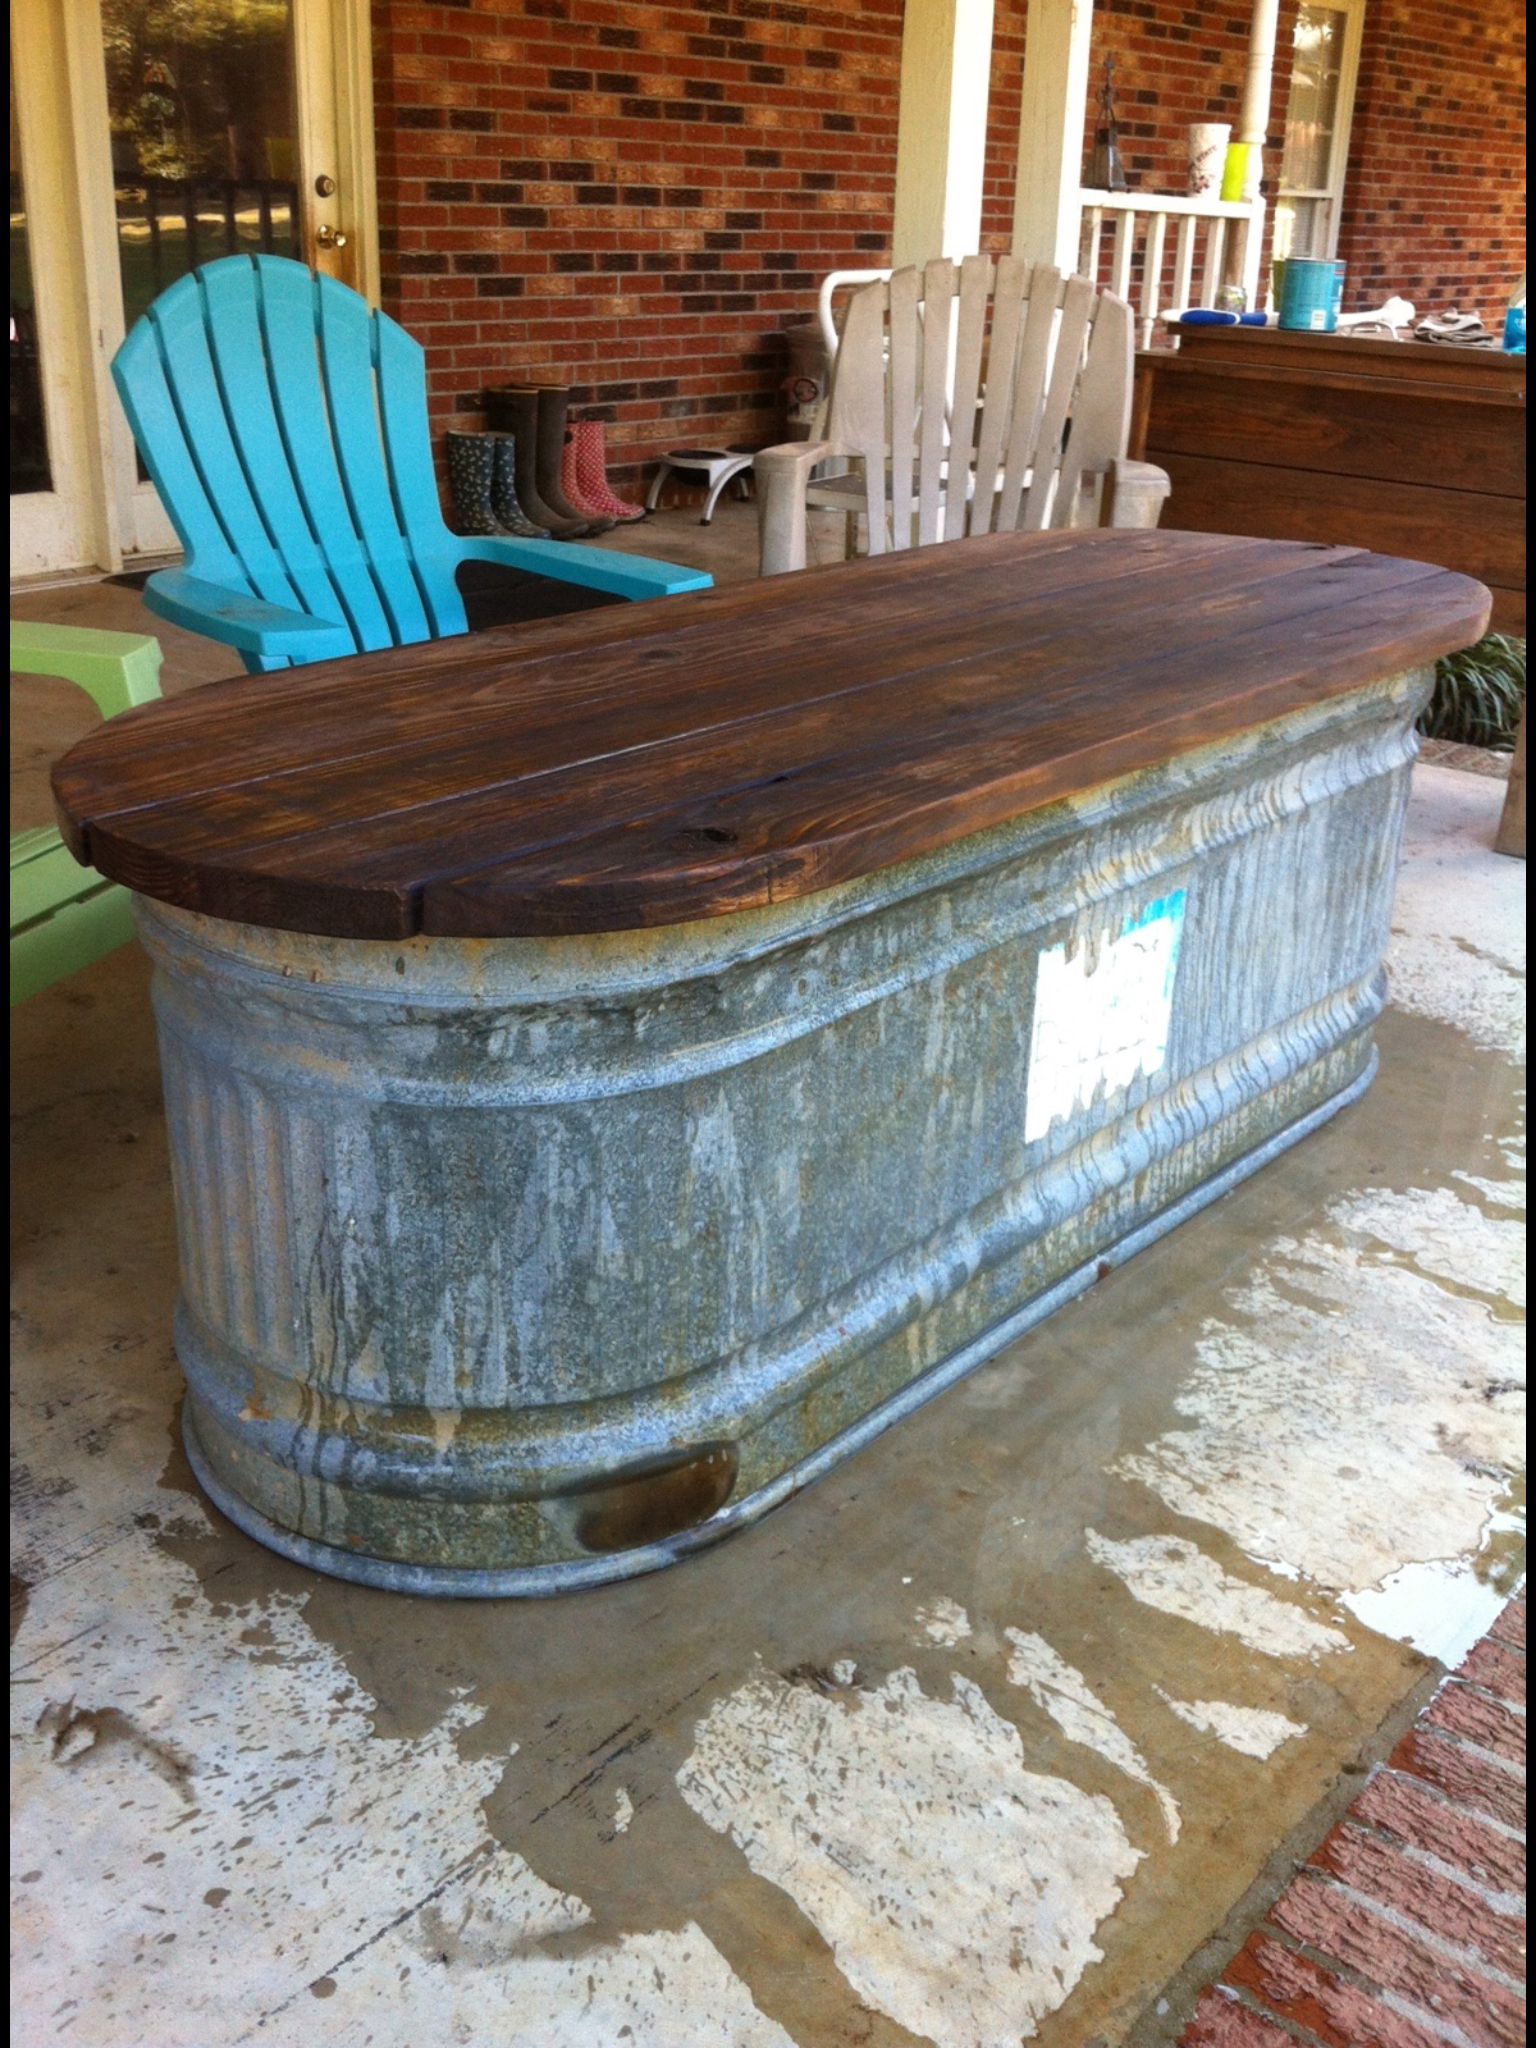 Water Trough Turned Into A Table Rustic Bar Decor Rustic House